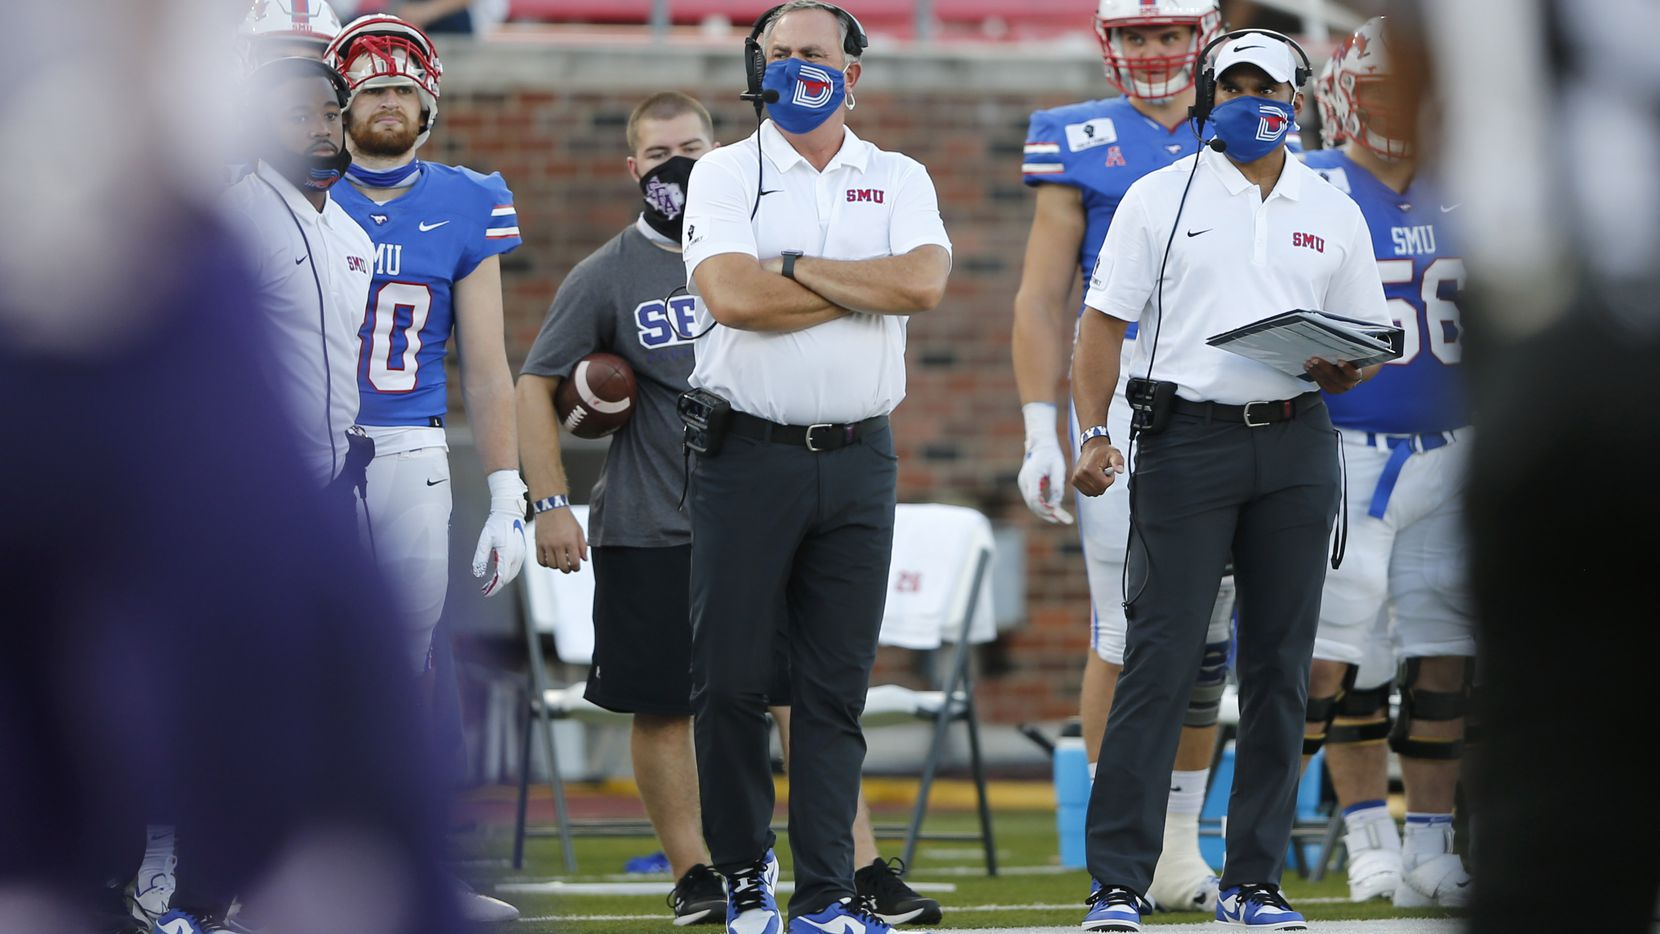 Southern Methodist Mustangs head coach Sonny Dykes on the sidelines during a game against the Stephen F. Austin Lumberjacks during the first half of their home opener at Ford Stadium in Dallas, on Saturday, September 26, 2020. (Vernon Bryant/The Dallas Morning News)